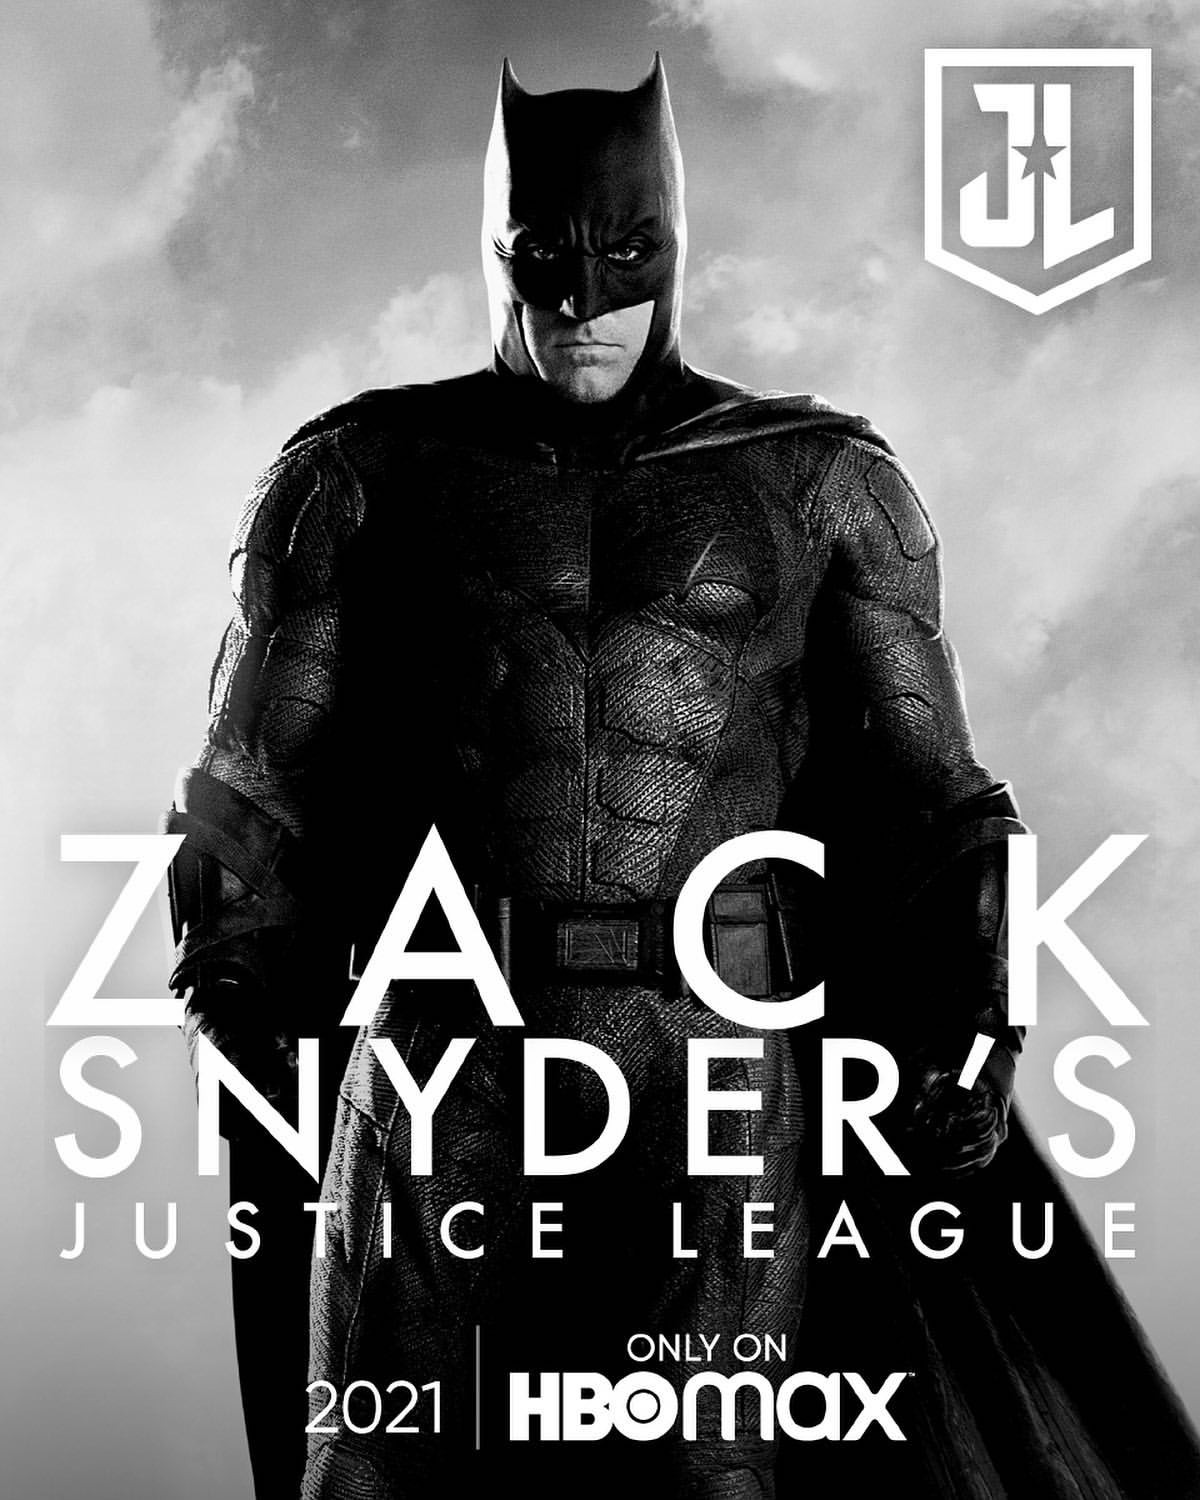 szmk_hbo_justice_league_snydercut_zack_snyder_batman_dc_comics_superman_aquaman_wonder_woman_cyborg_darkseid_5.jpg